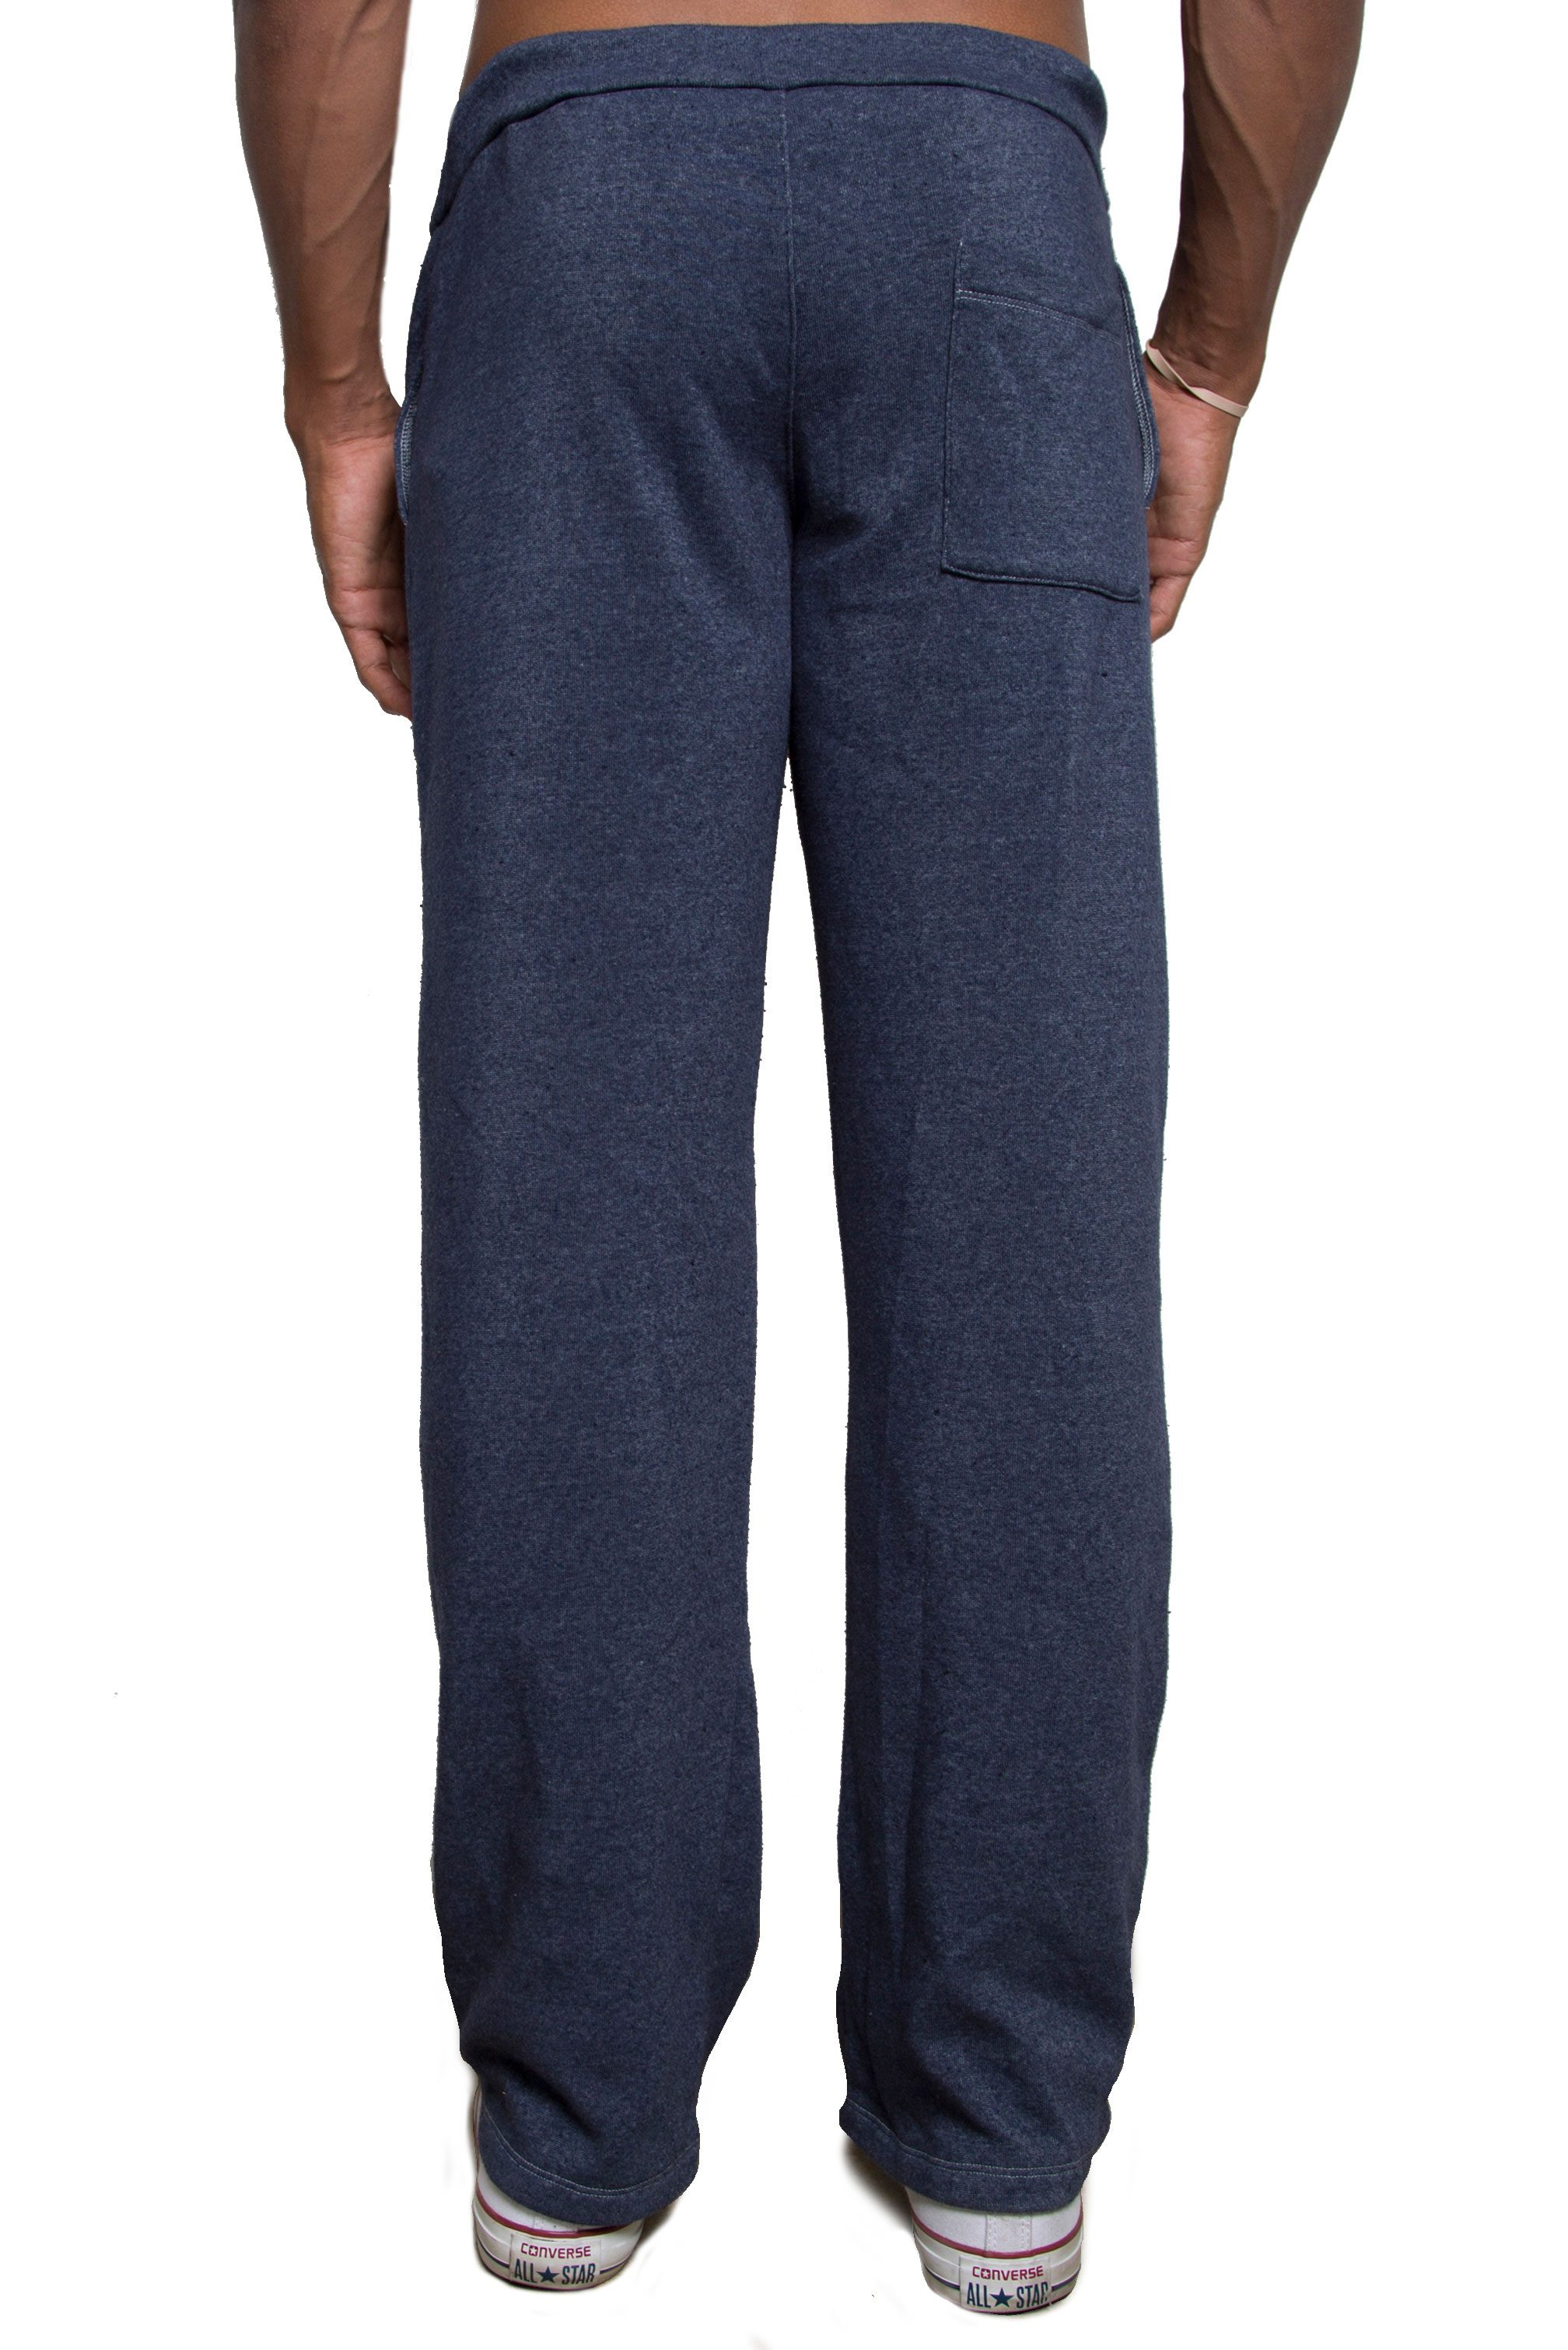 Relaxed-Fit Sweatpant Back View